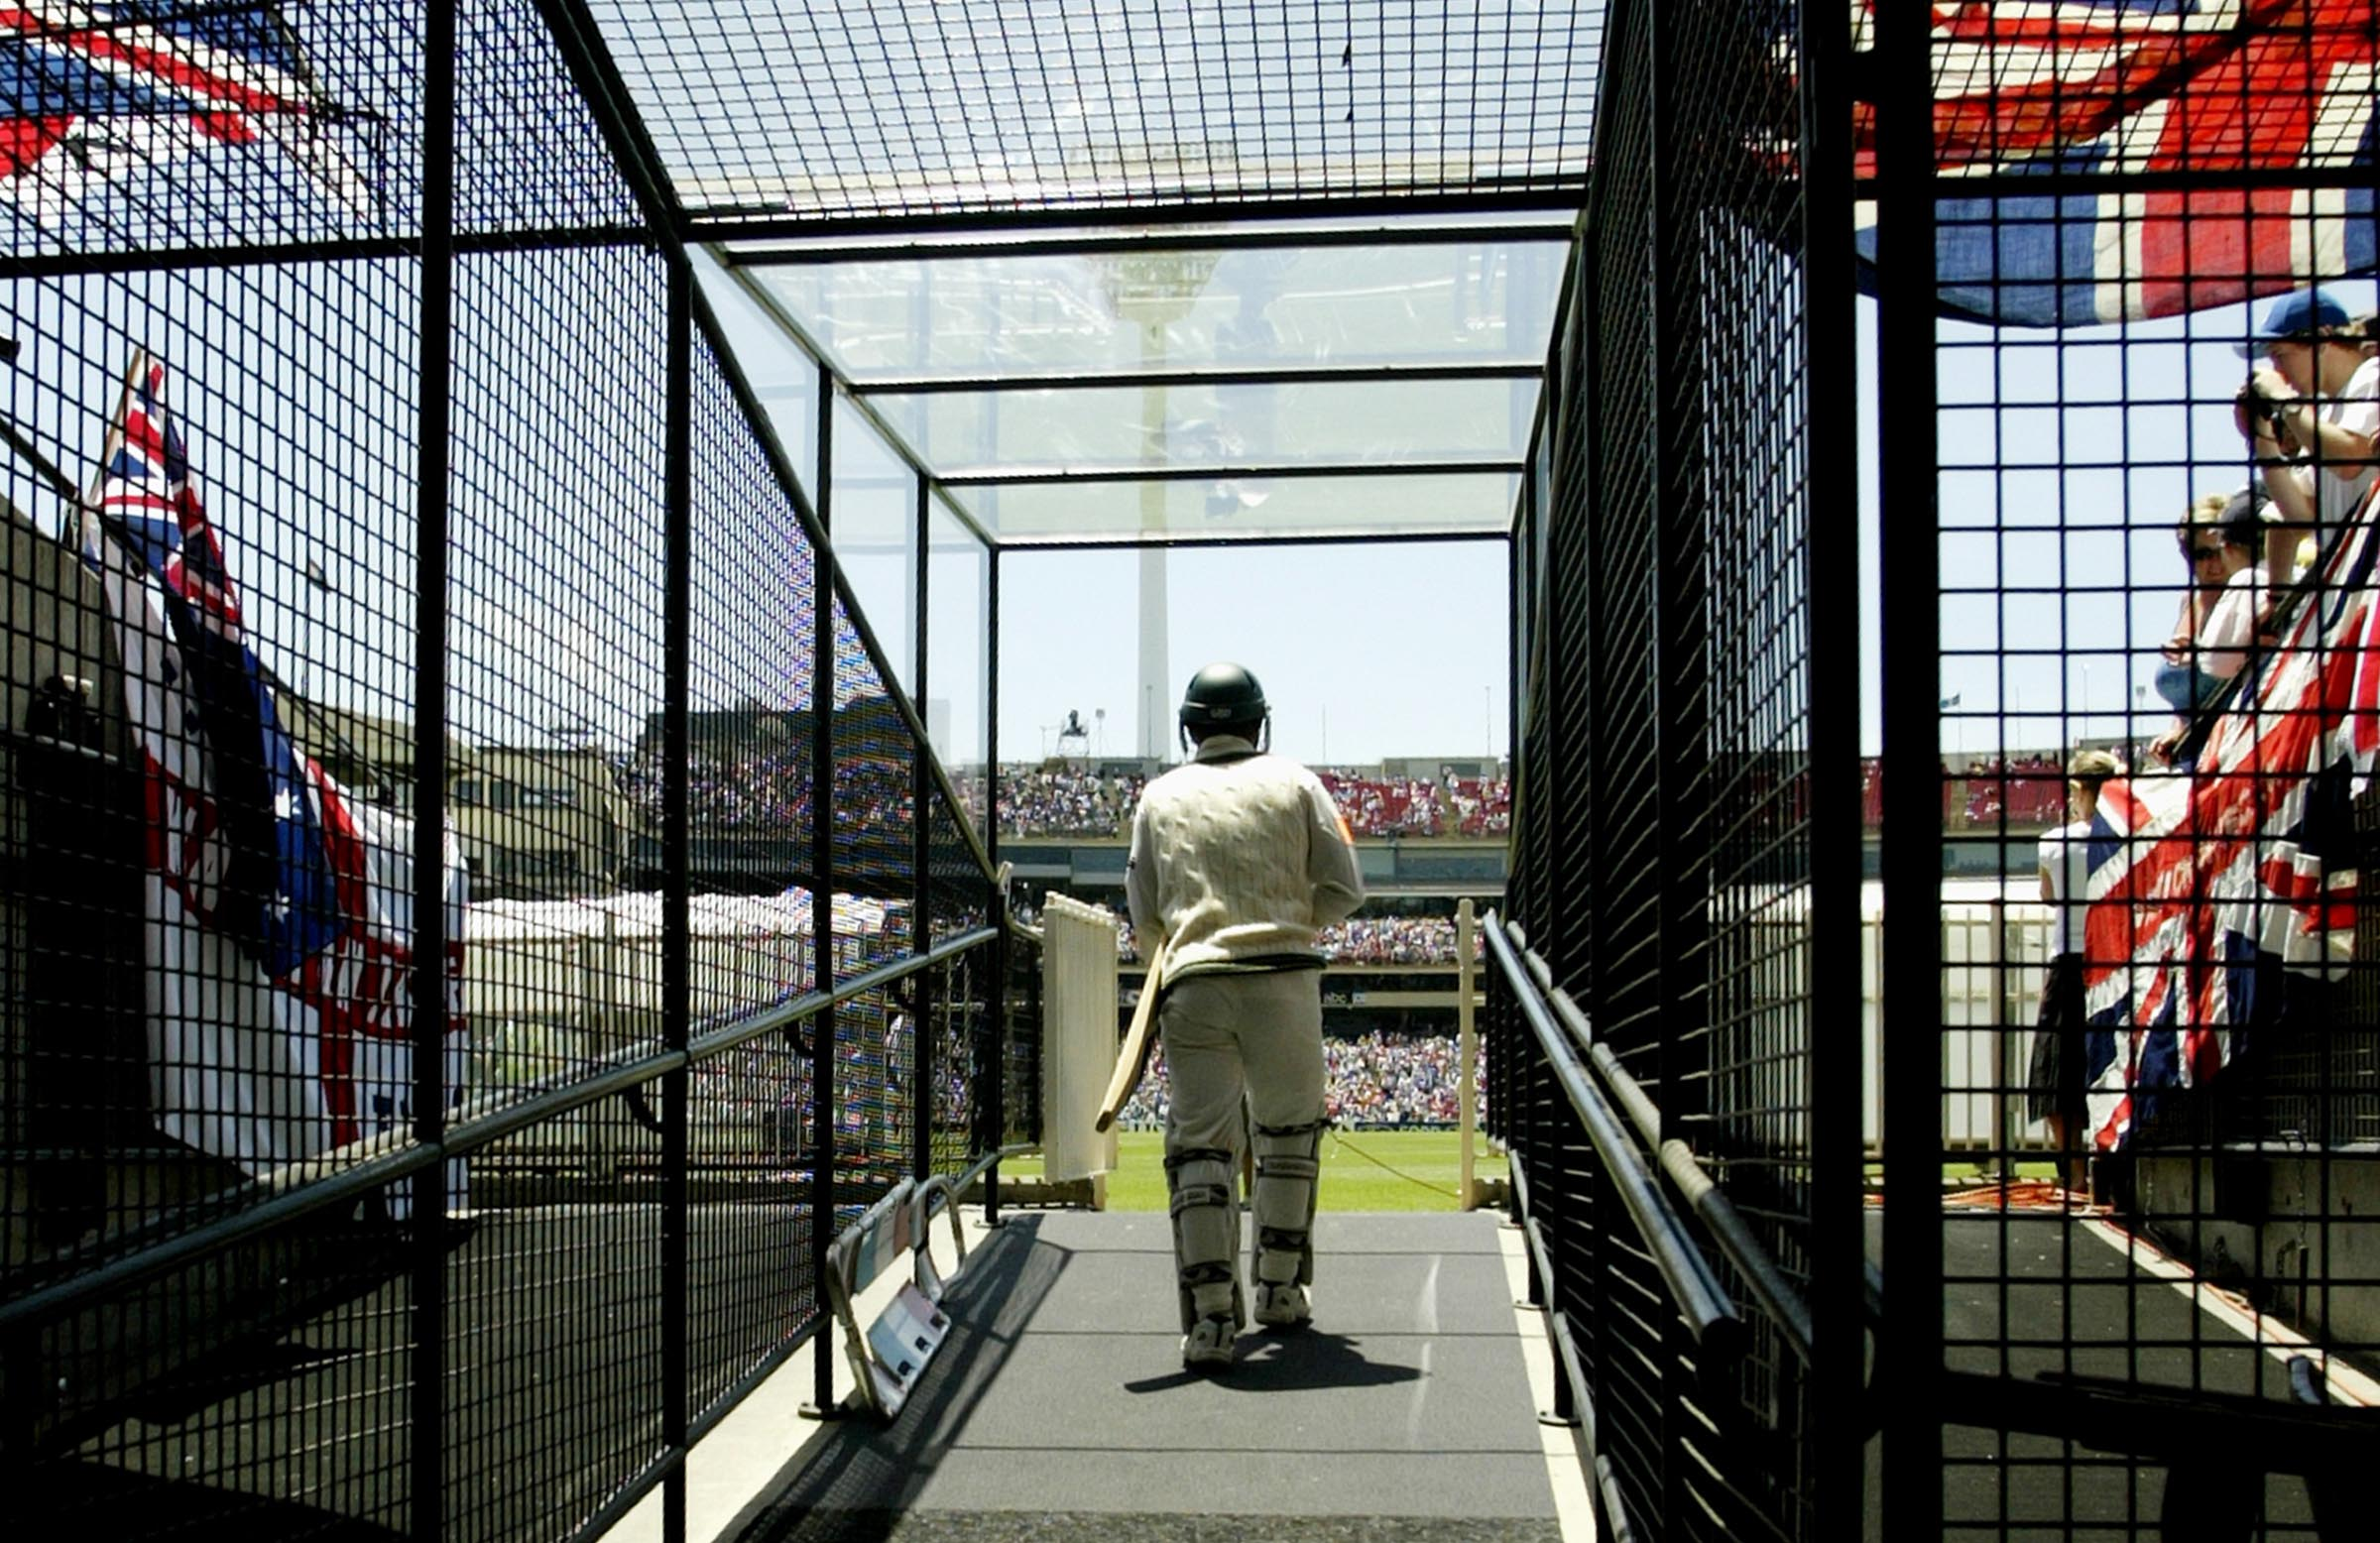 Justin Langer walks out to bat at the MCG in 2002 // Getty